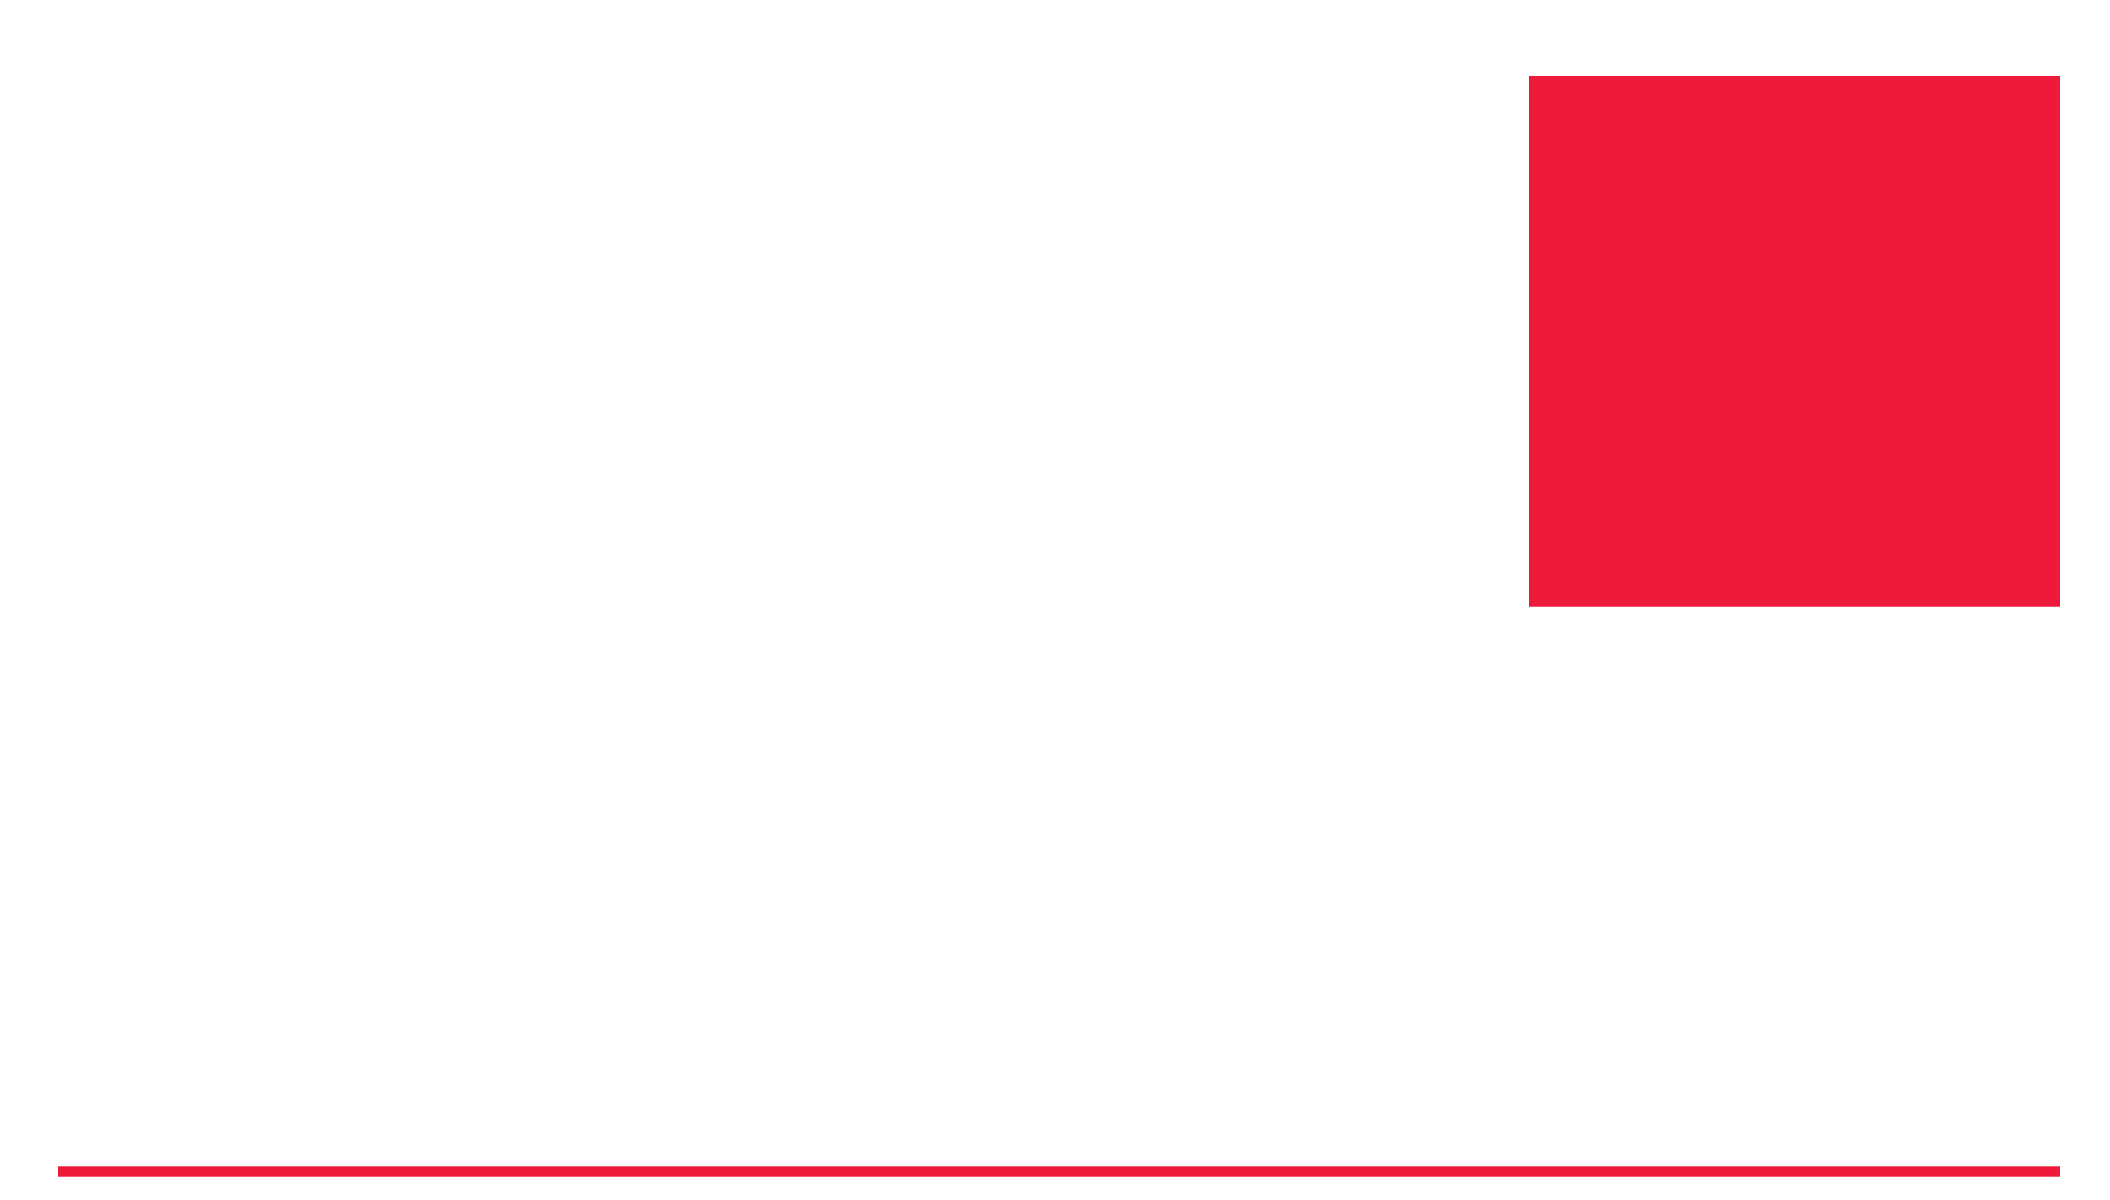 KAS Services India